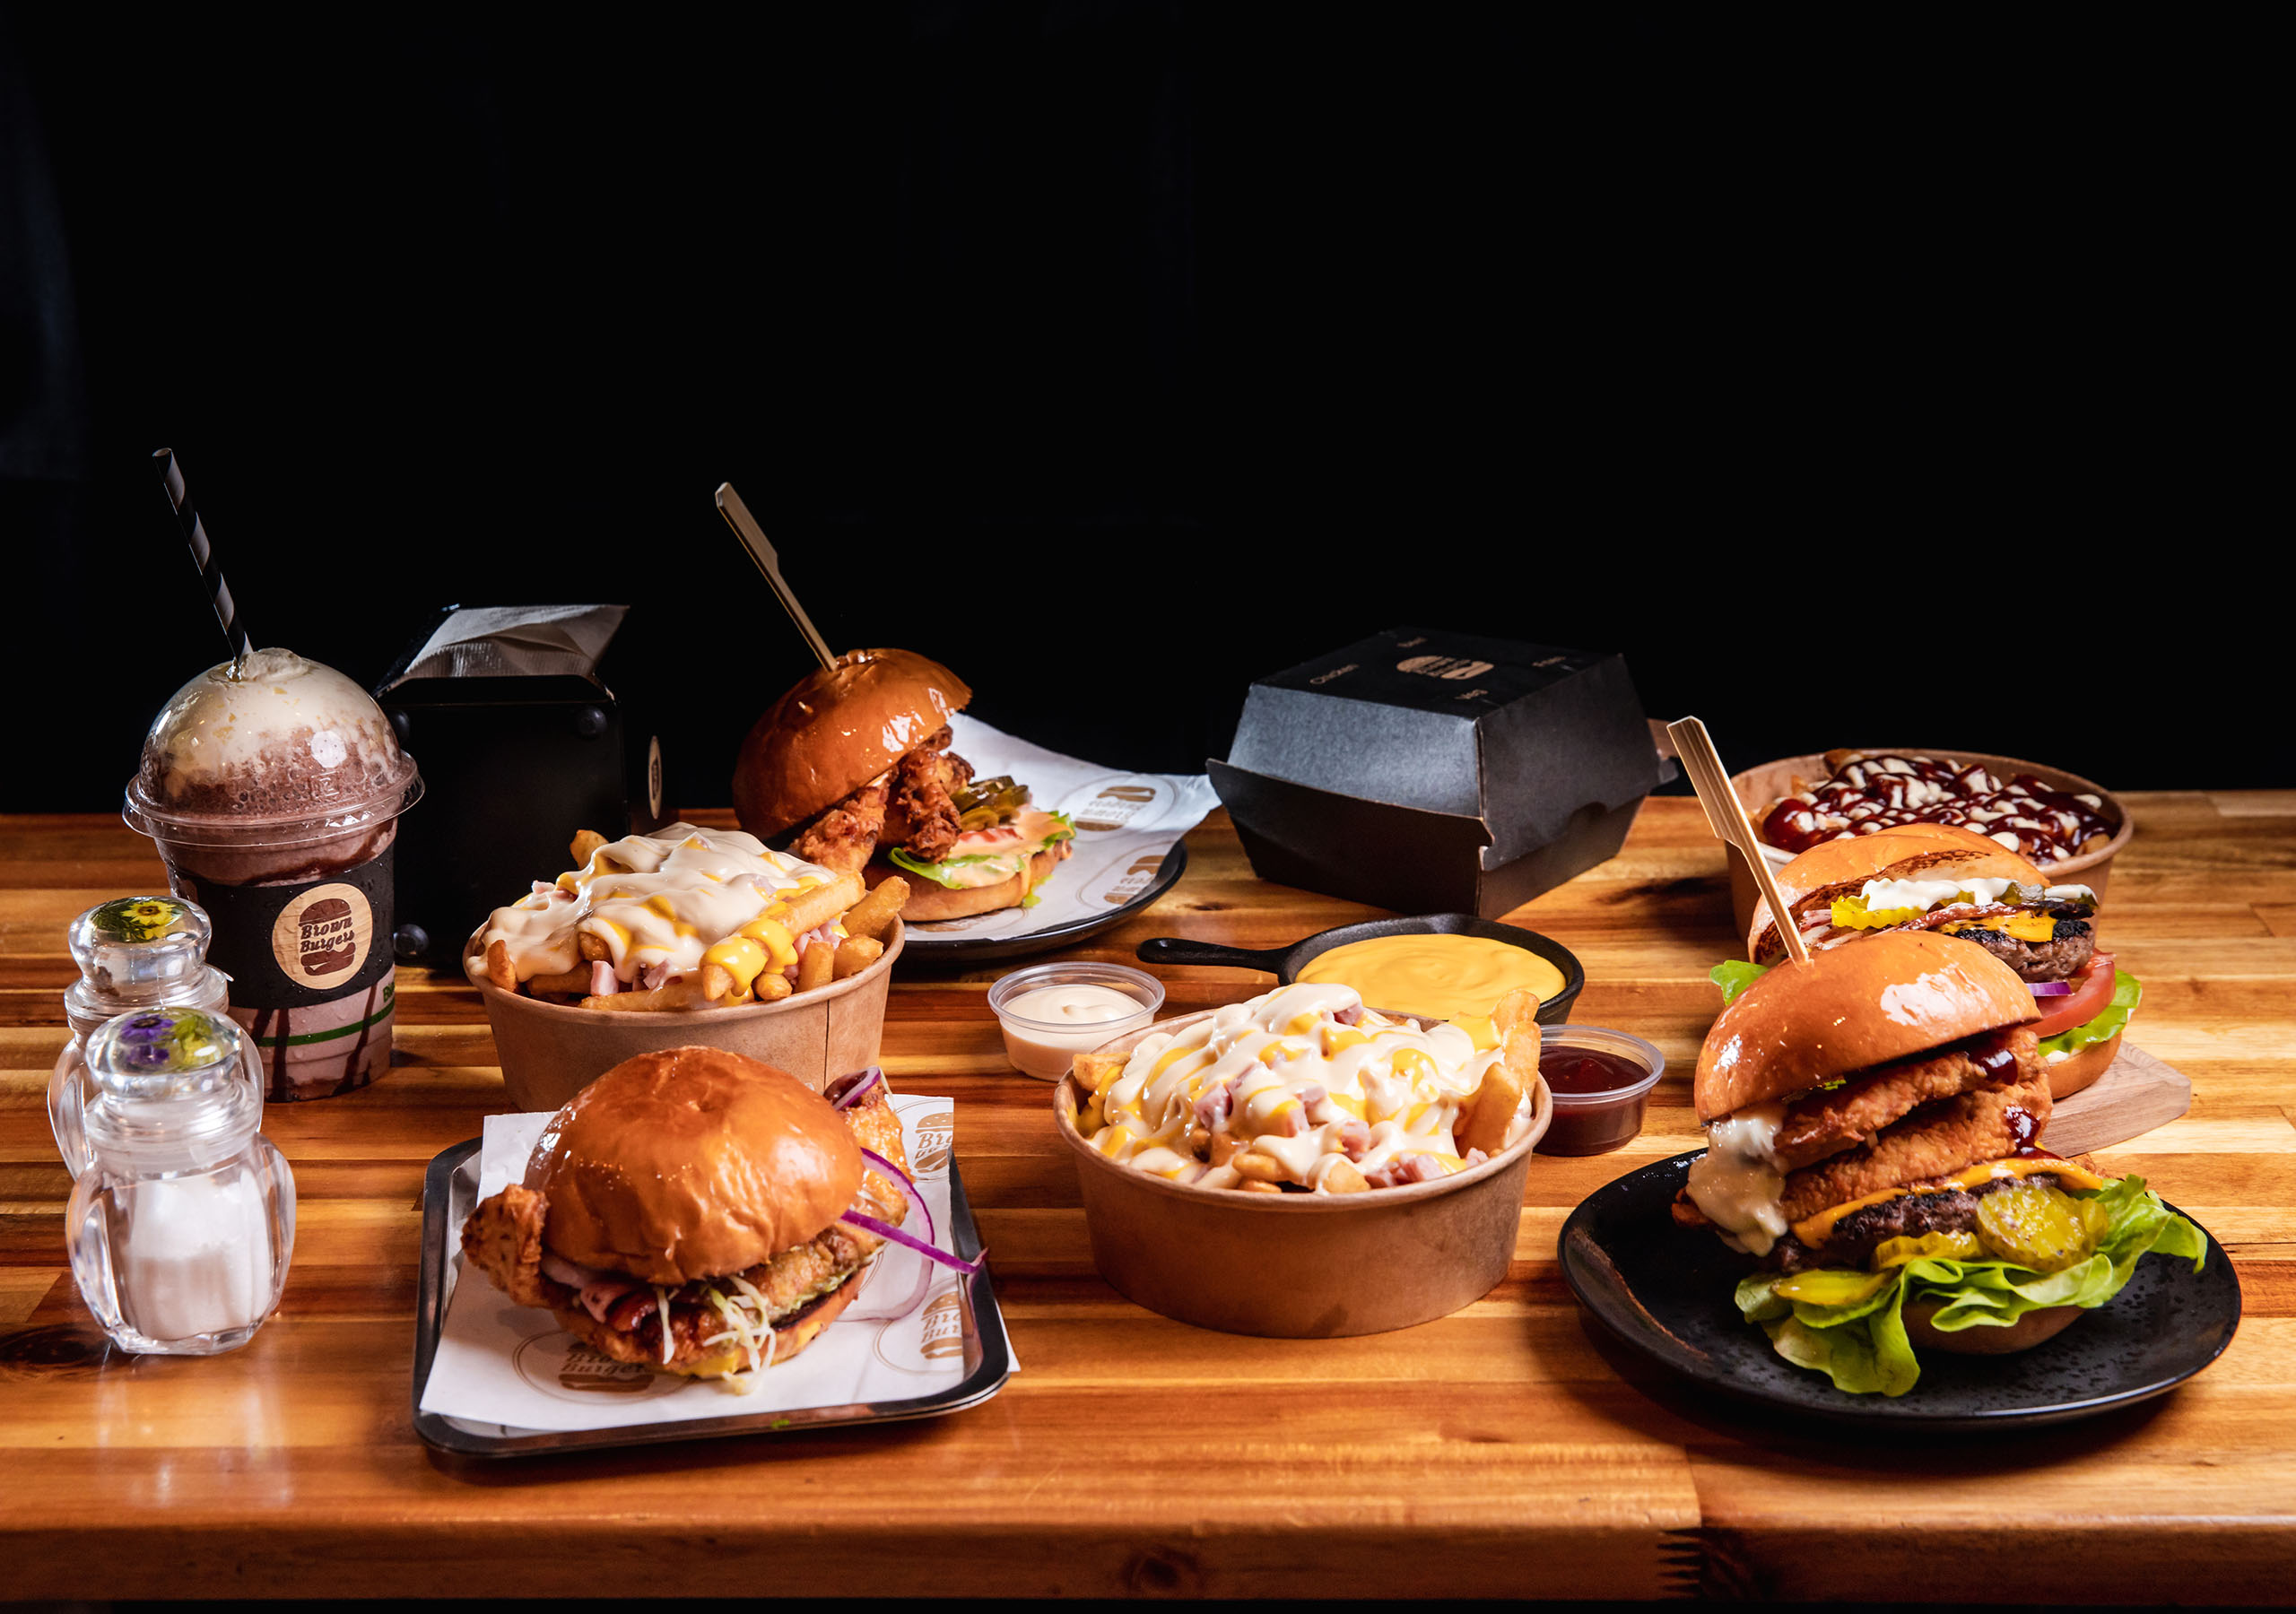 3 Unique Burger Dishes That You Should Try in Moonah, Hobart